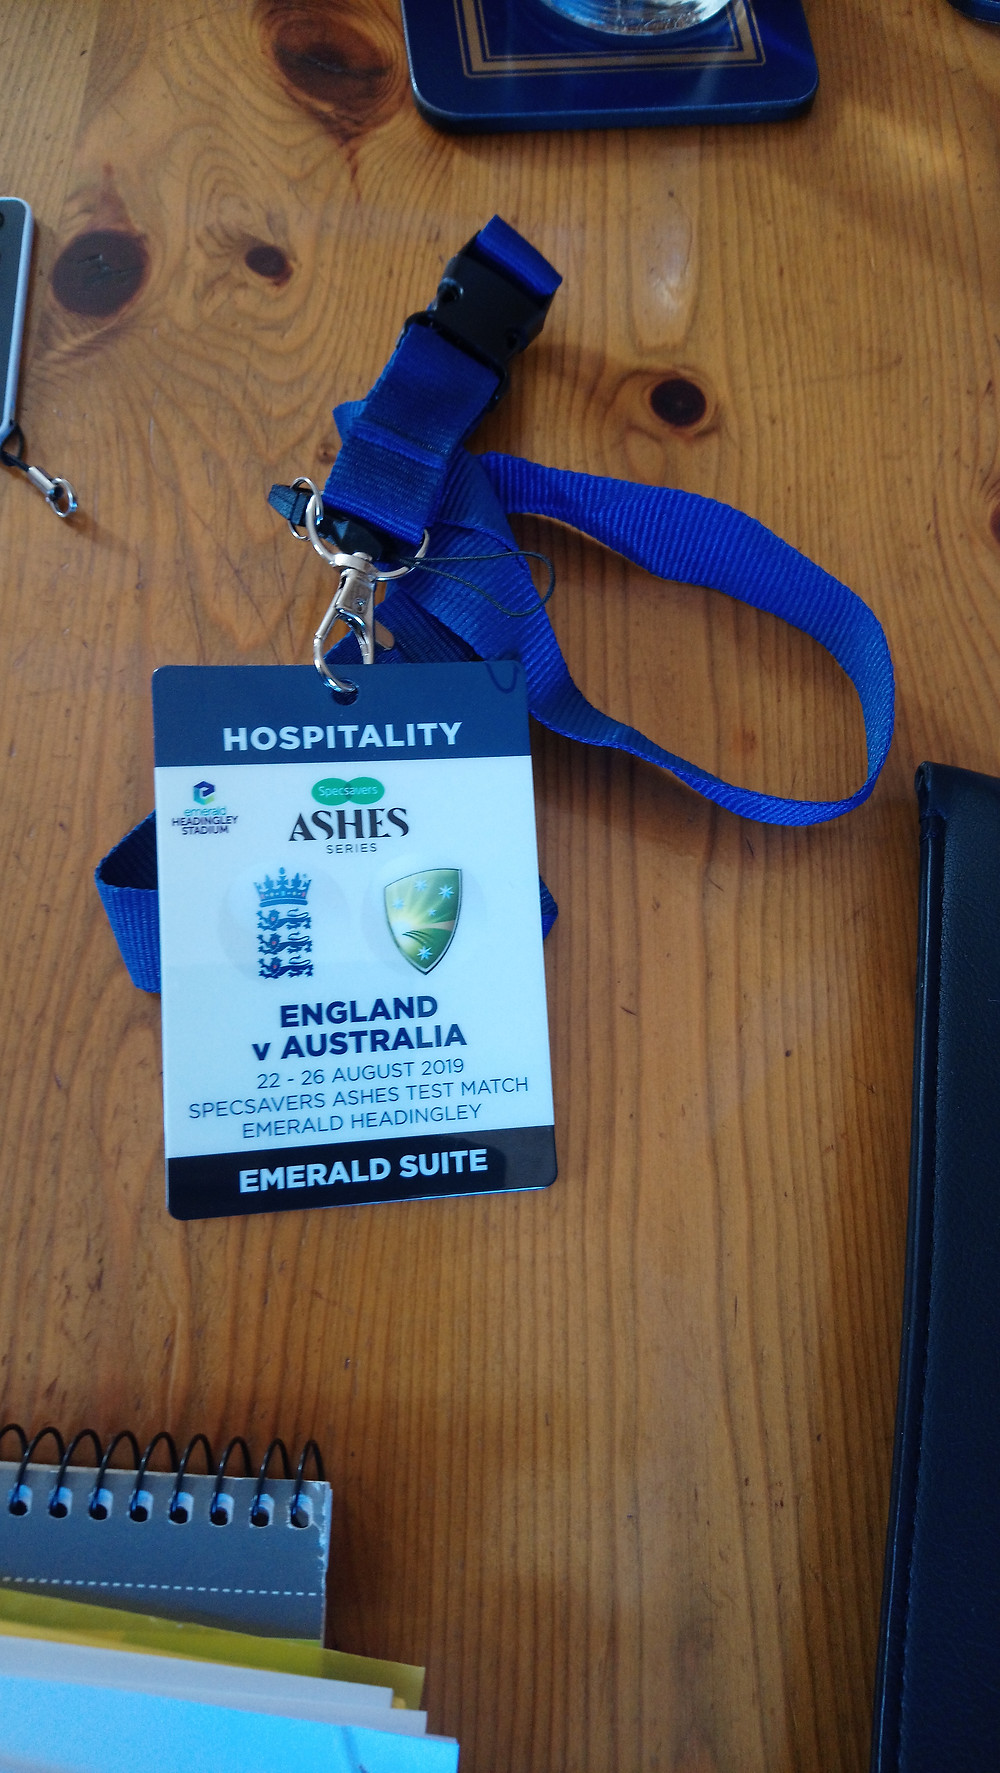 Ashes hospitality Headingley